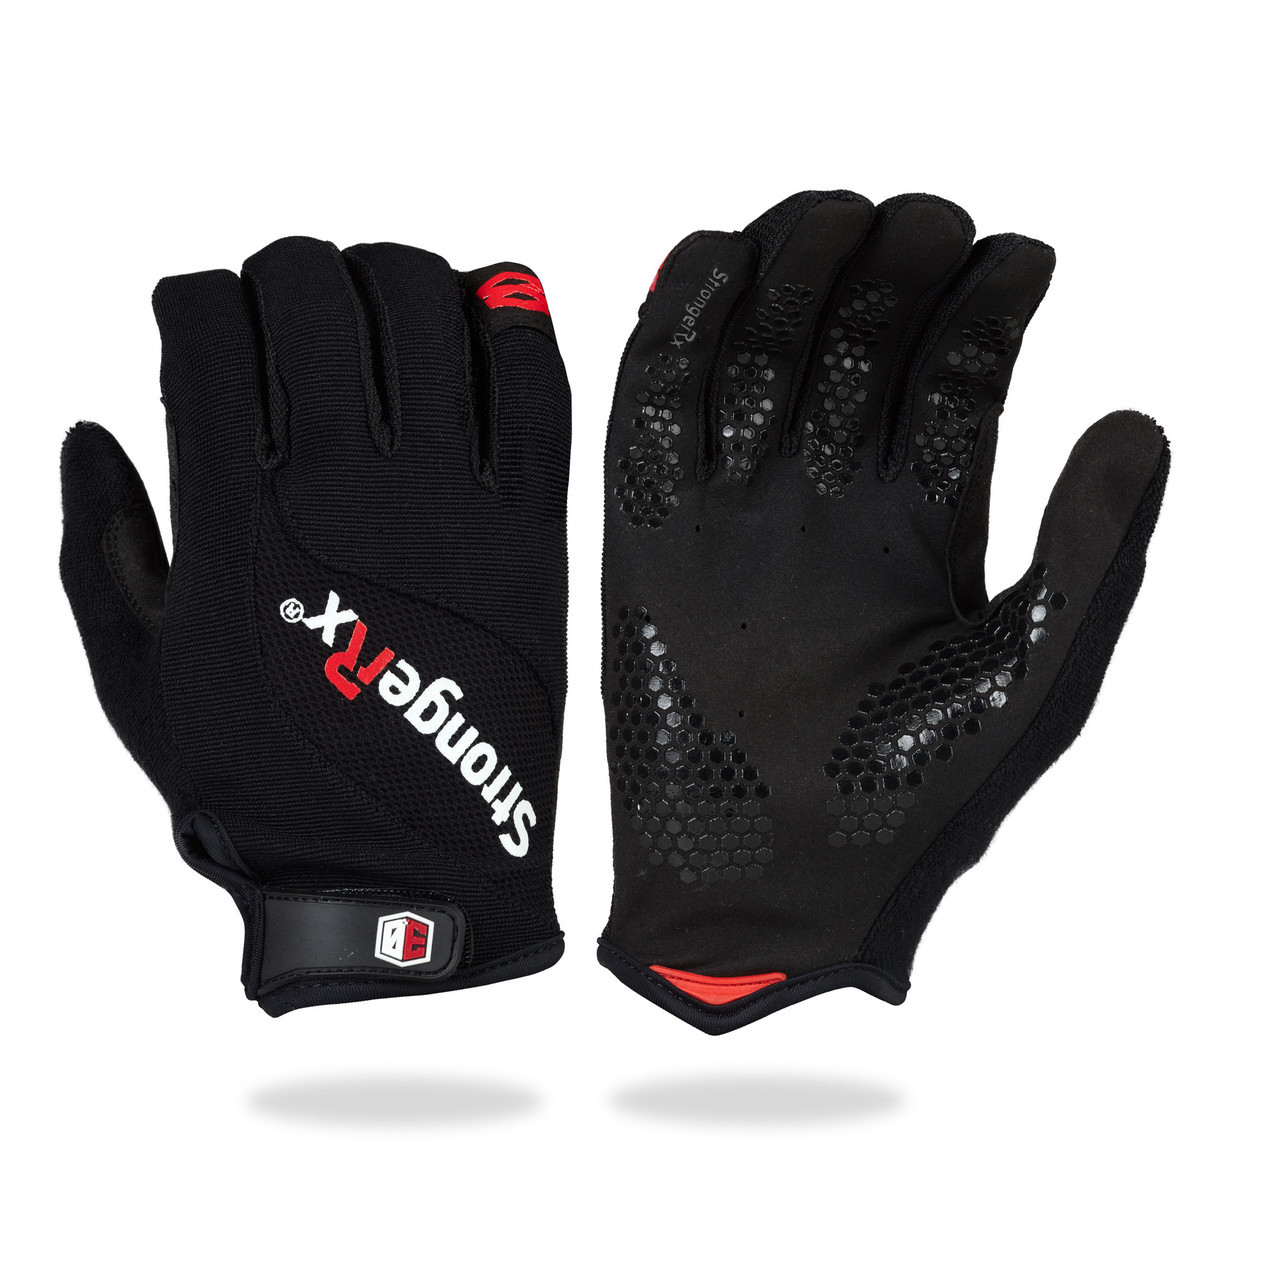 Battle Ropes For Sale >> StrongerRx 3.0 Workout Gloves - Weight Lifting Gloves